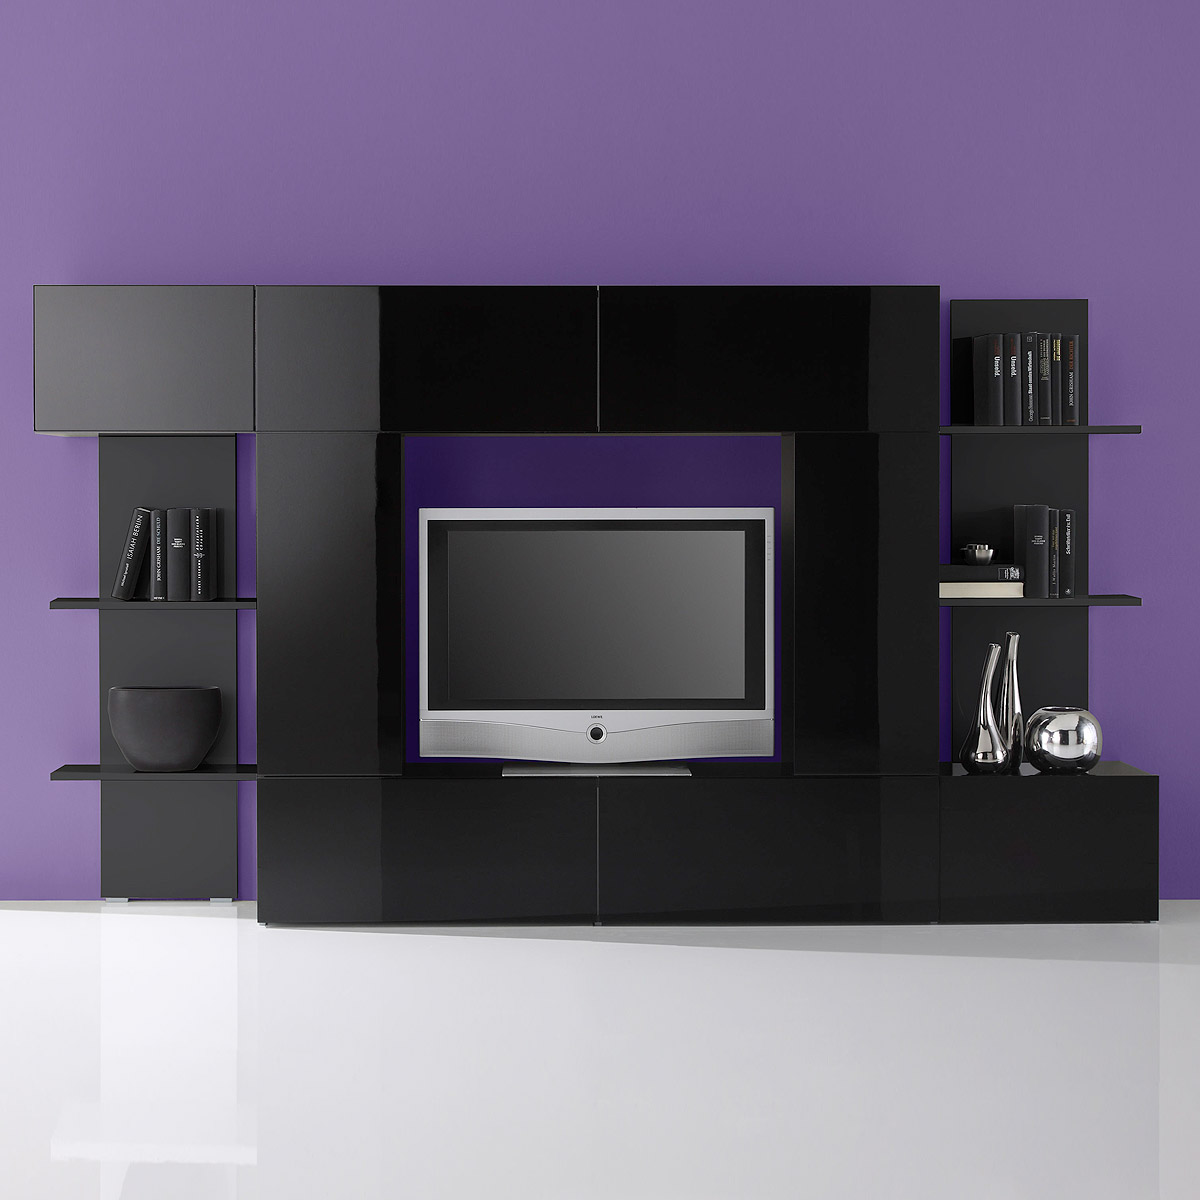 wohnwand cubo wohnzimmer designer anbauwand schwarz hochglanz lackiert. Black Bedroom Furniture Sets. Home Design Ideas